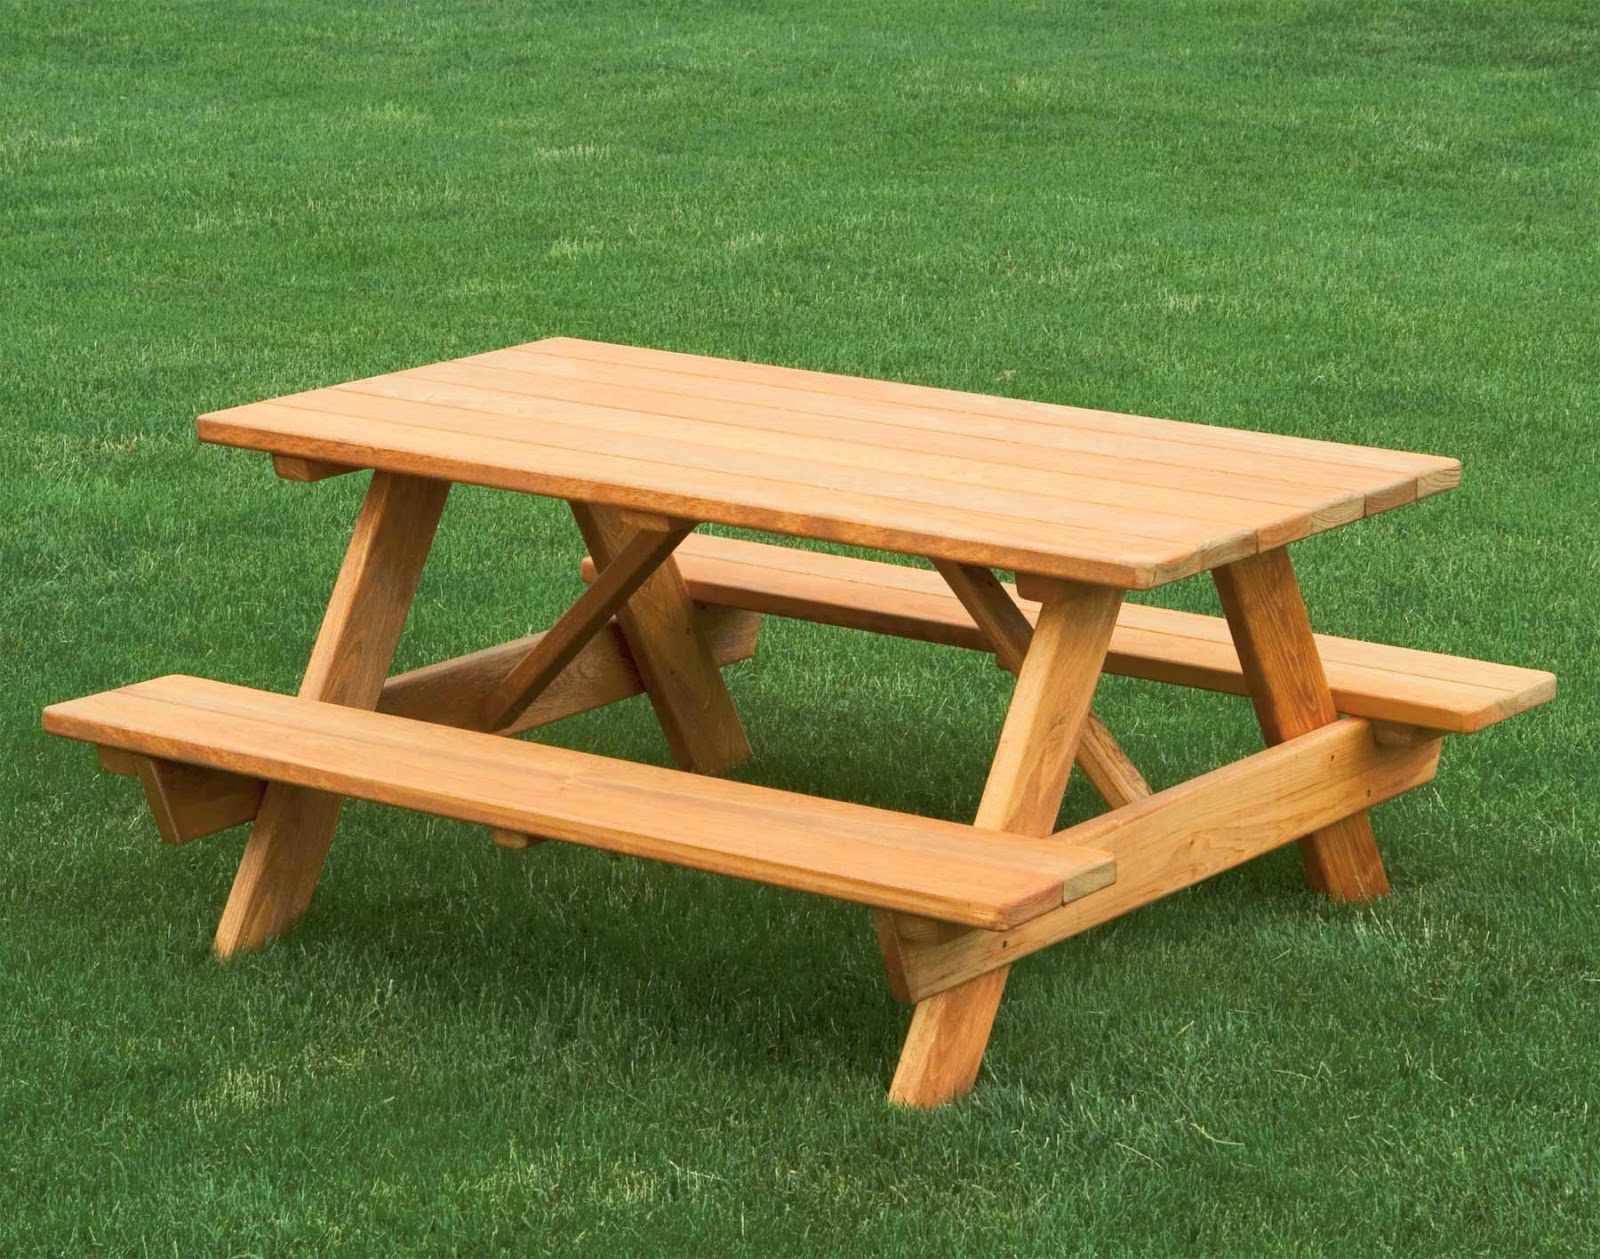 Woodworking Plans Reviewed How To Build A Picnic Table